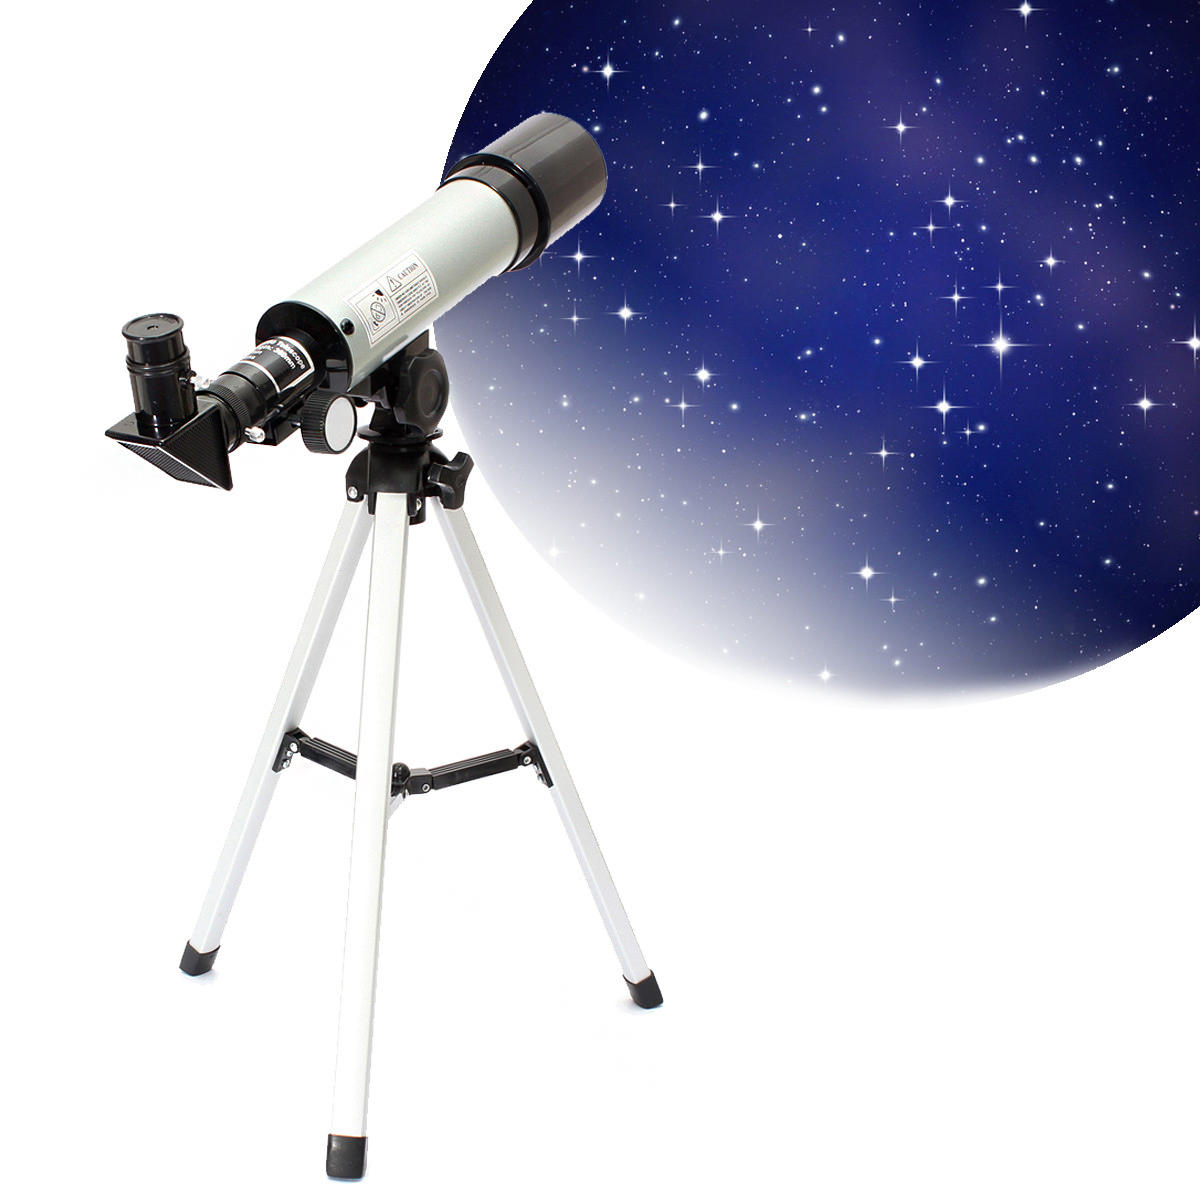 IPRee F360x50 HD Refractive Astronomical Telescope High Magnification Zoom Monocular for Space Observation